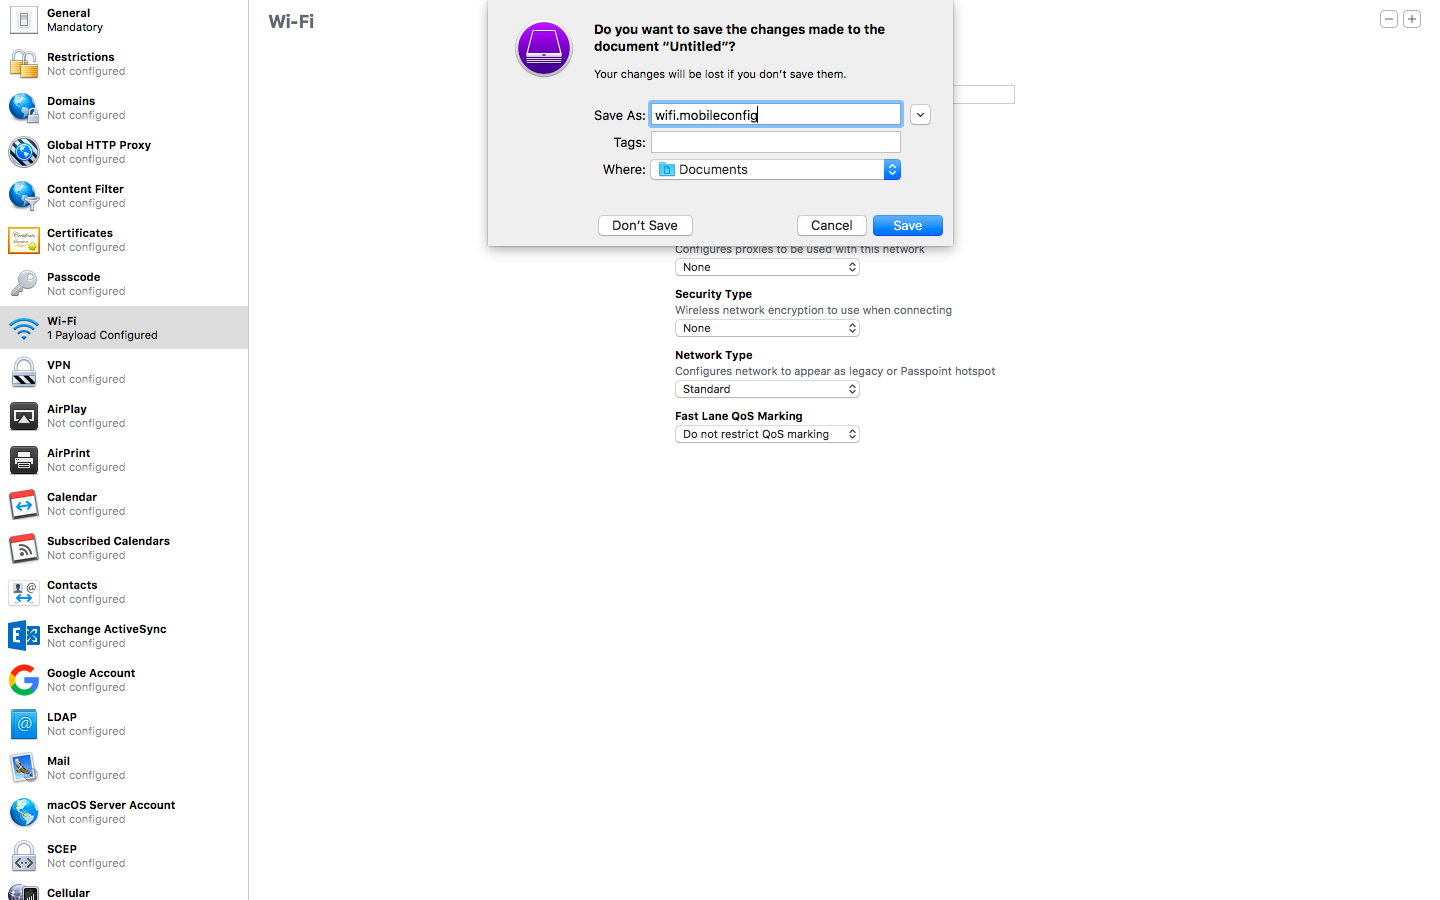 Configuring Wi-Fi Profile on Apple Configurator 2